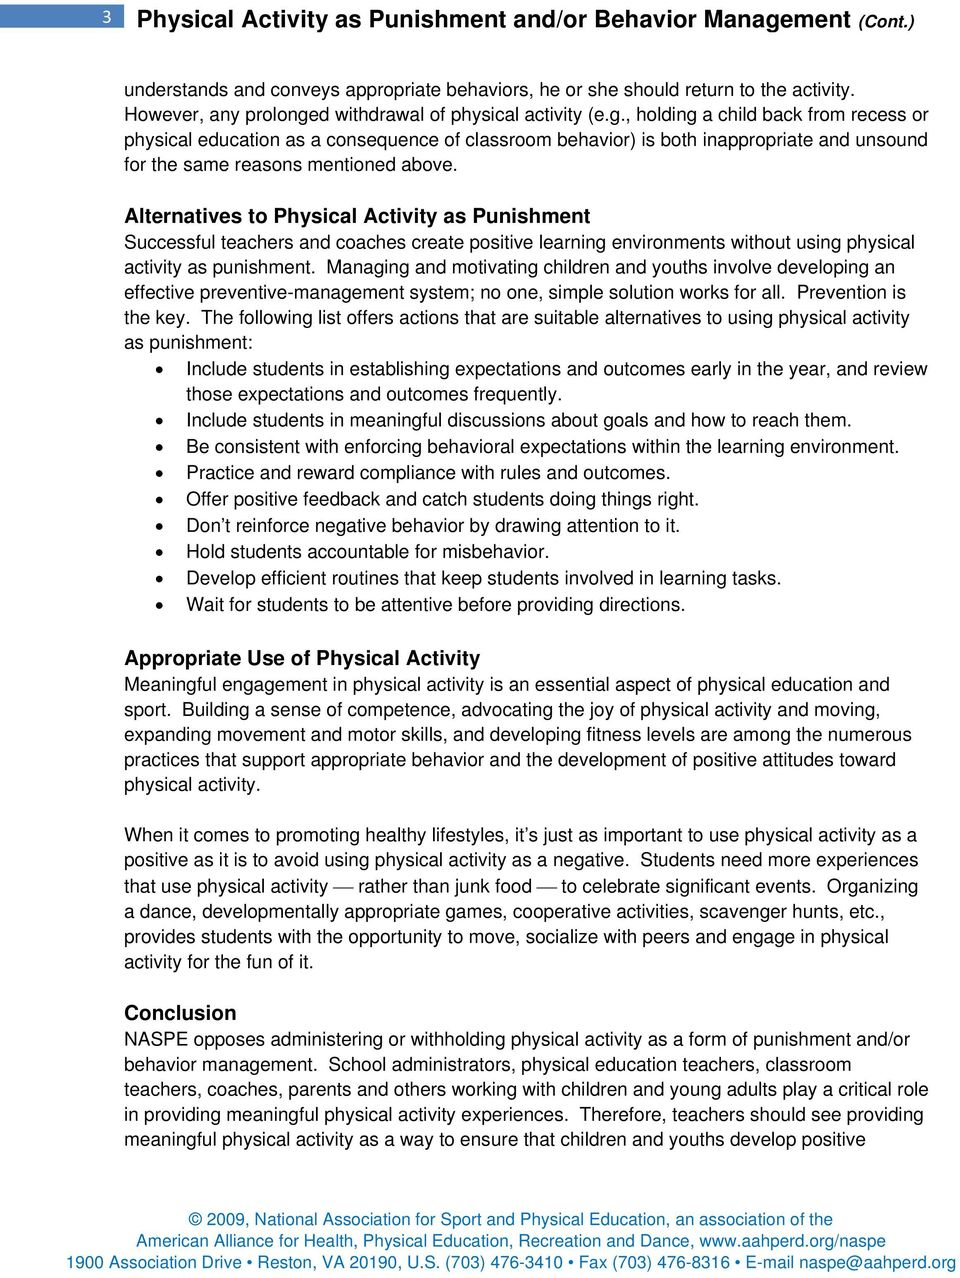 Physical Activity Used as Punishment and/or Behavior